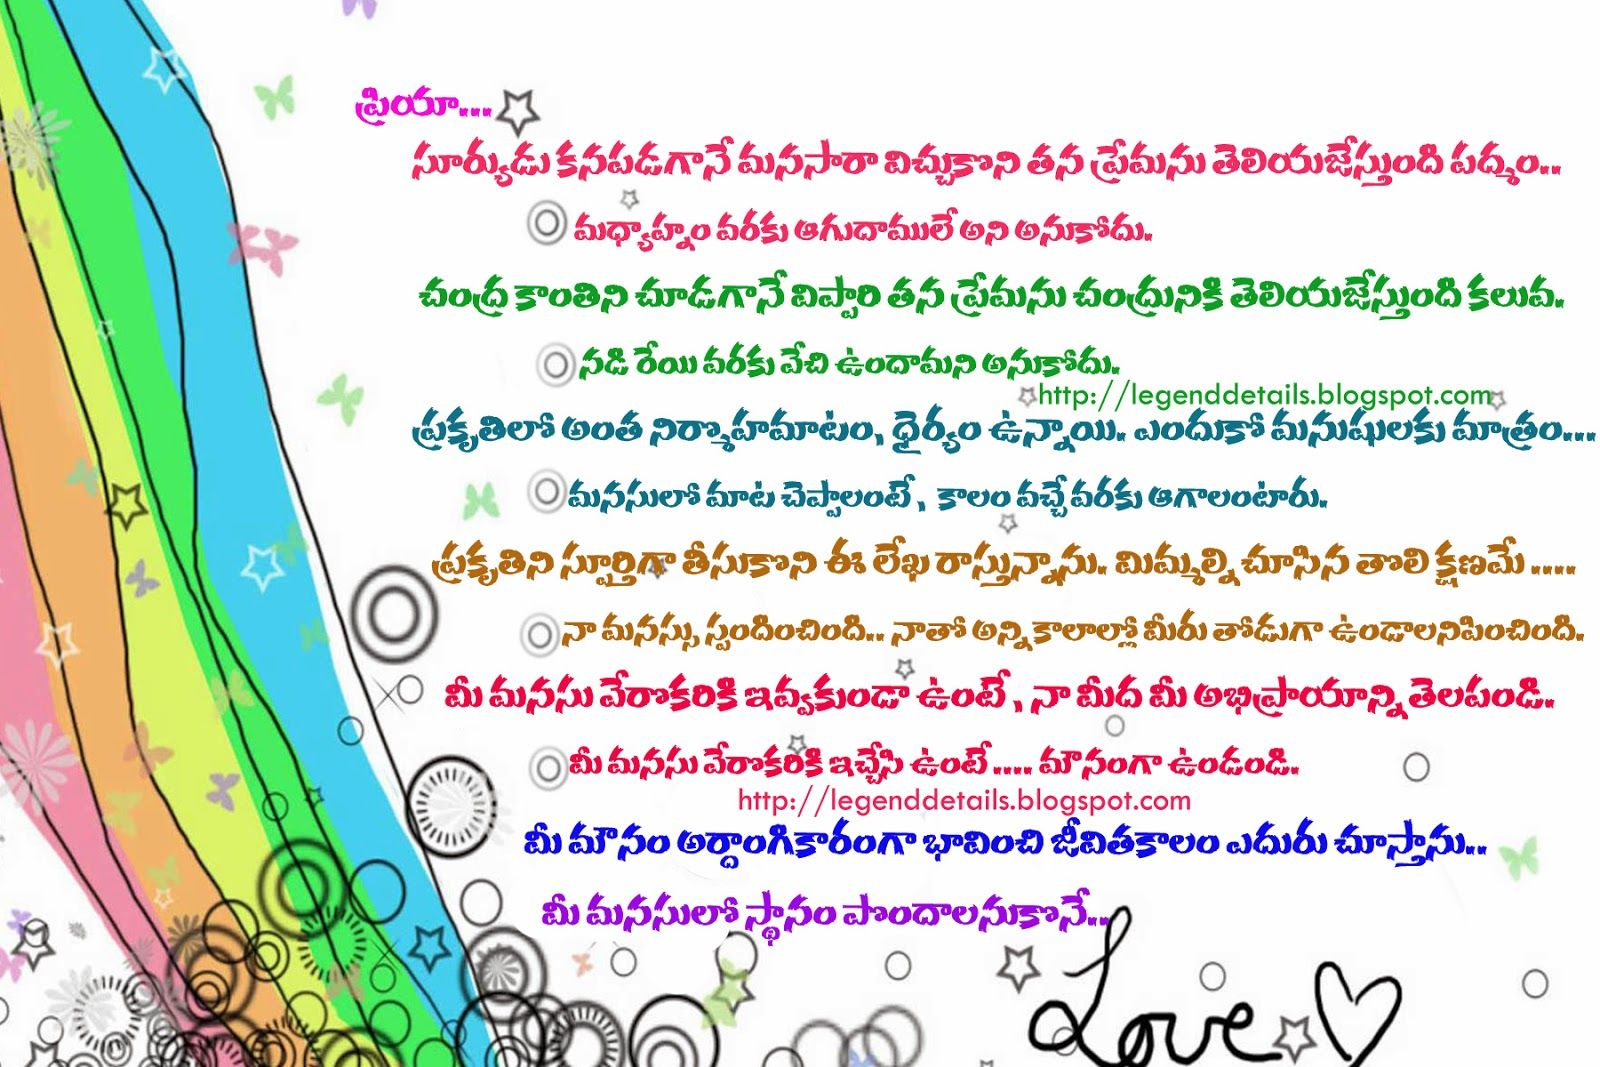 Legendary quotes telugu quotes english quotes hindi quotes world best telugu love letter the legendary love telugu love letters best telugu love letters great telugu love letters mitanshu Gallery